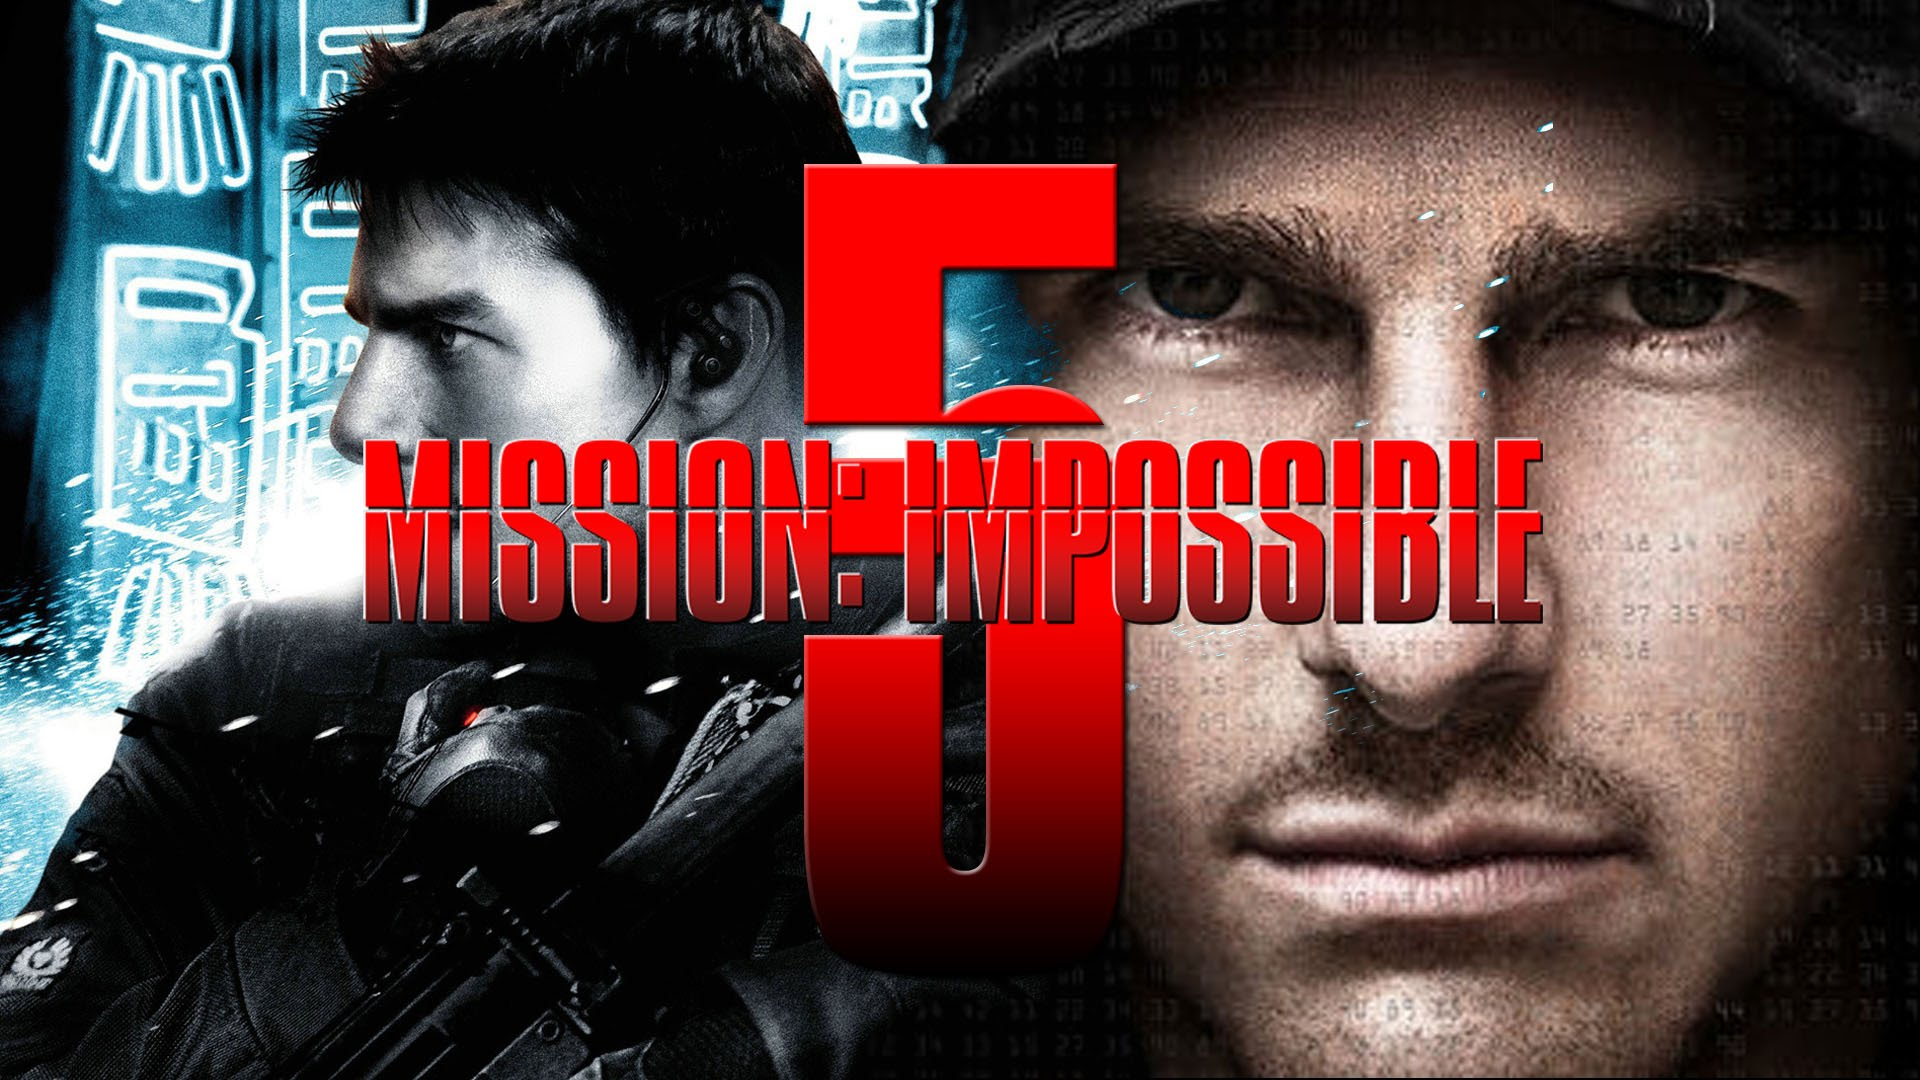 Photo of Recenzija filma MISSION IMPOSSIBLE – ROGUE NATION: Mission accomplished!